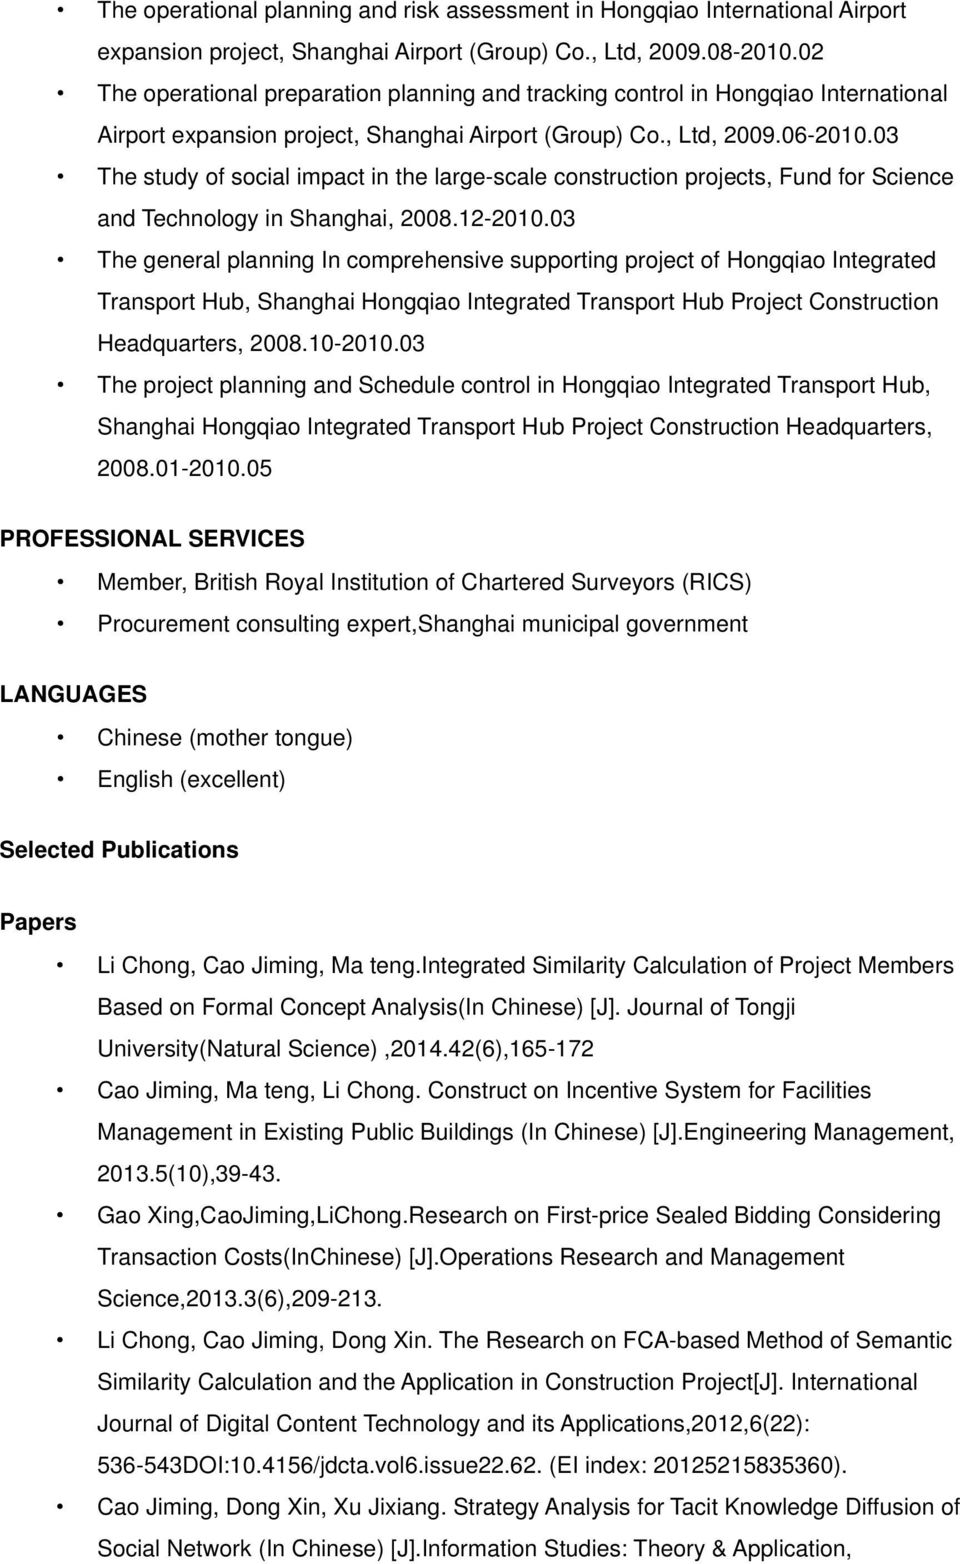 03 The study of social impact in the large-scale construction projects, Fund for Science and Technology in Shanghai, 2008.12-2010.